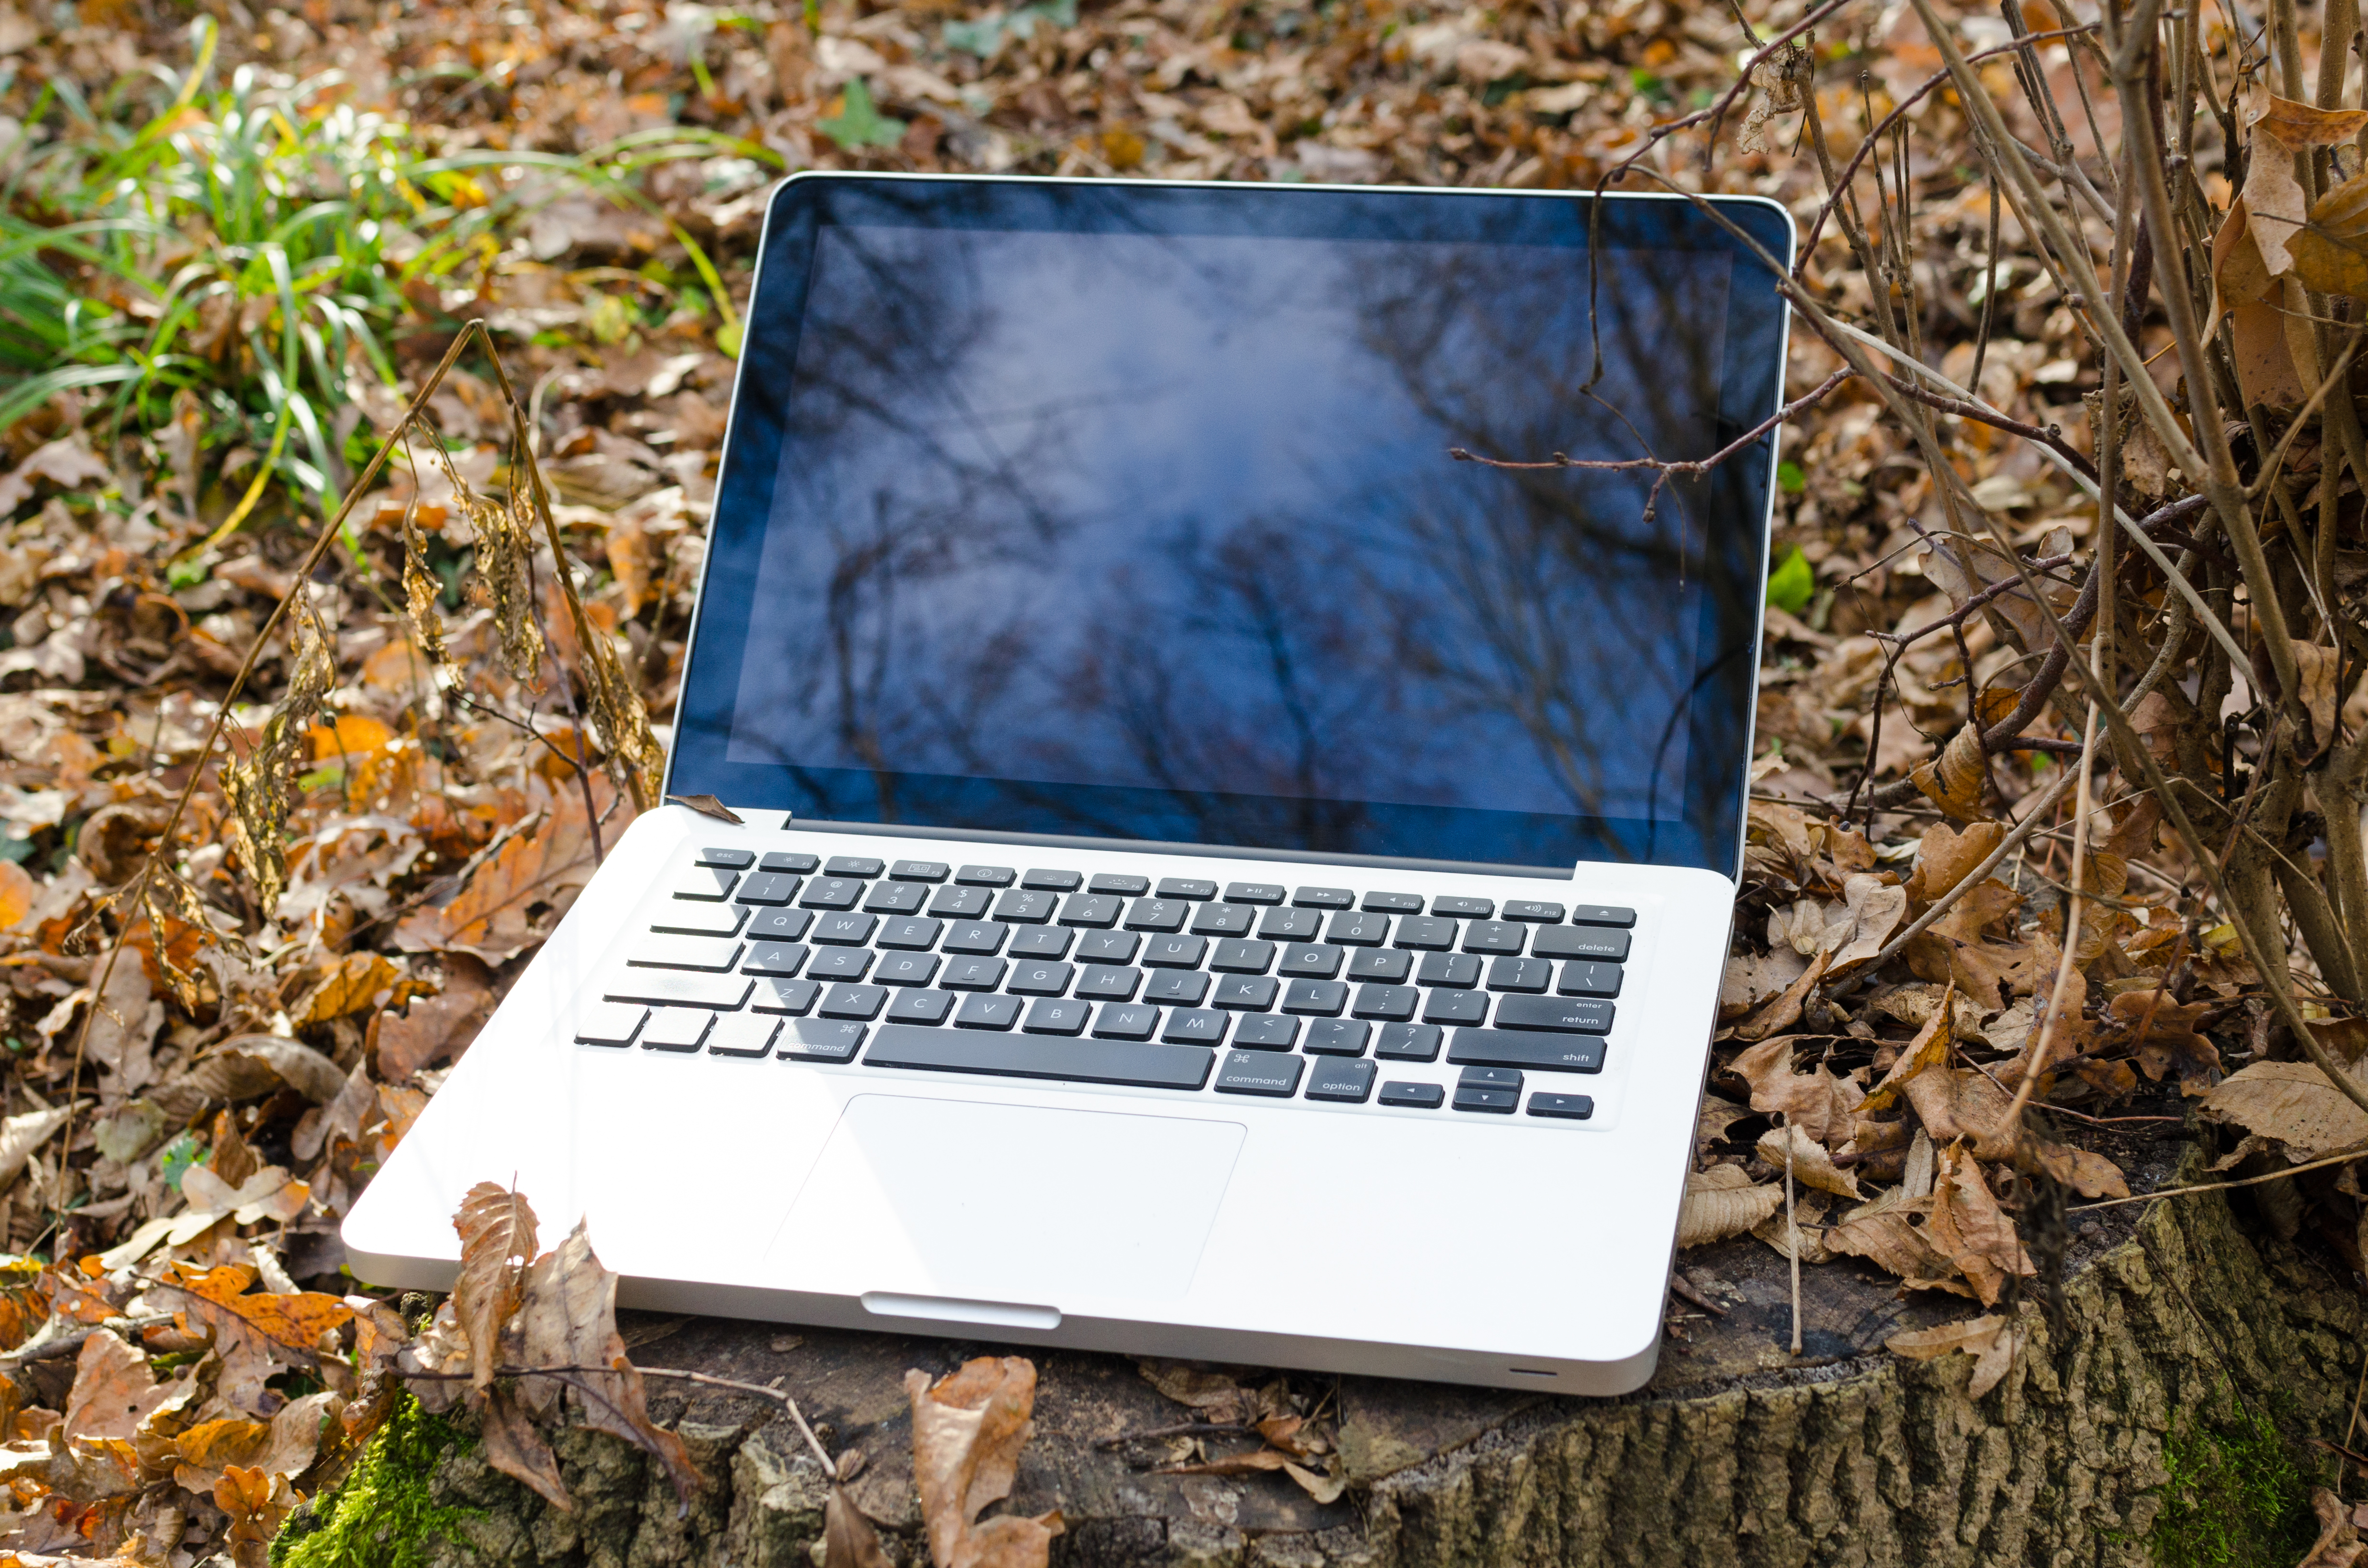 Laptop in forest - nature concept photo